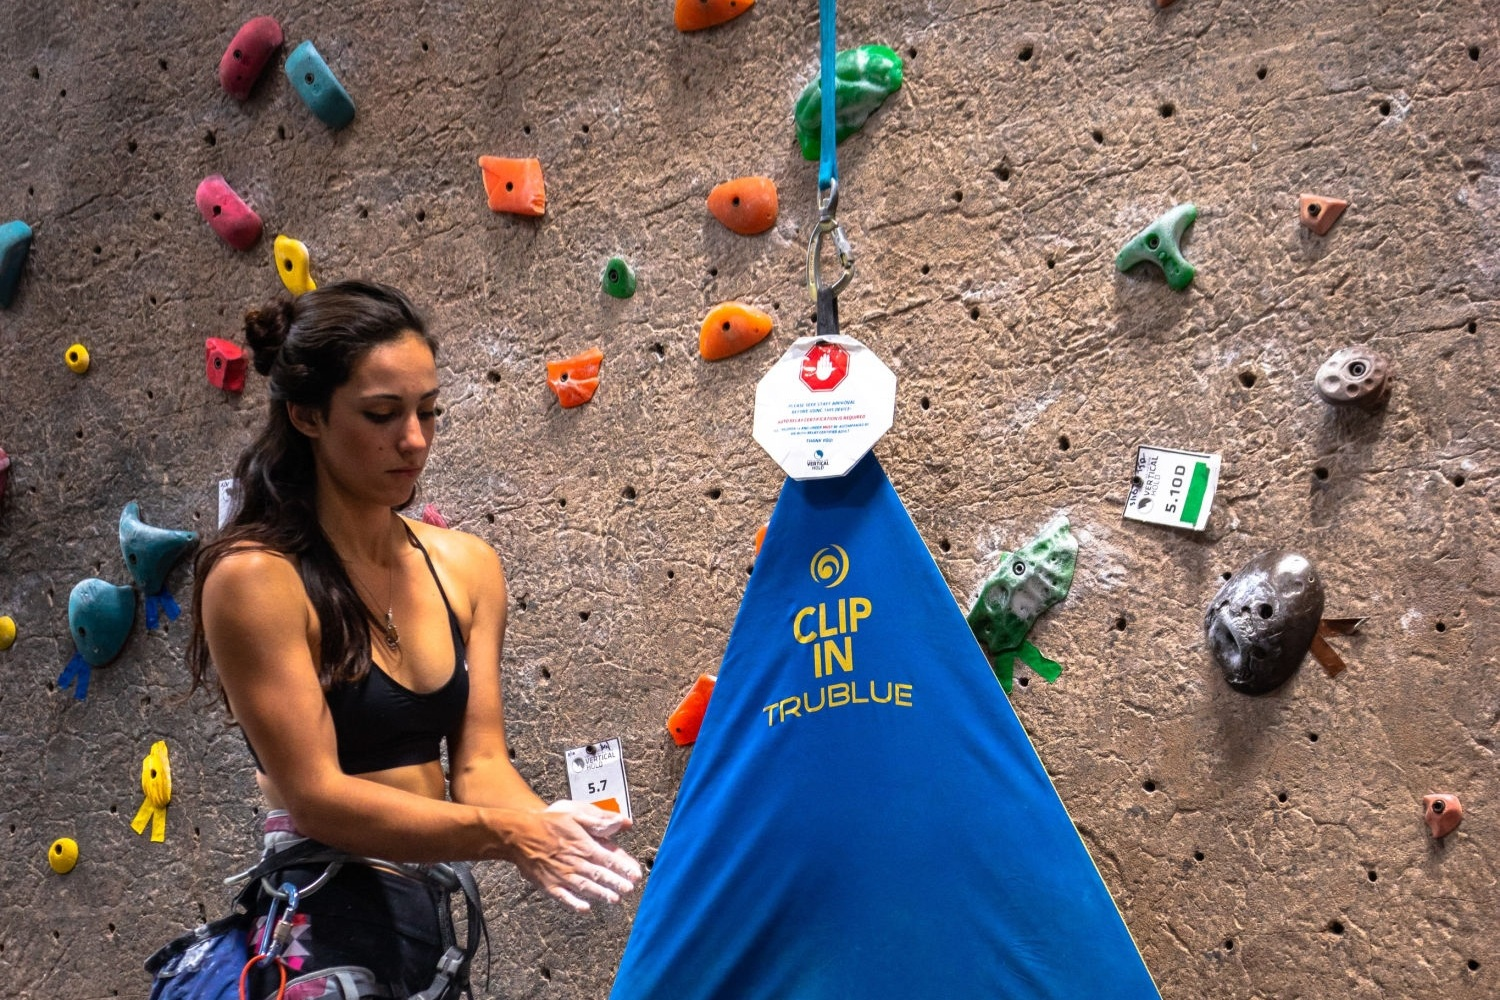 No partner? No problem! Vertical Hold is the only San Diego gym that offers Auto Belays. Get that climb in with no partner necessary!